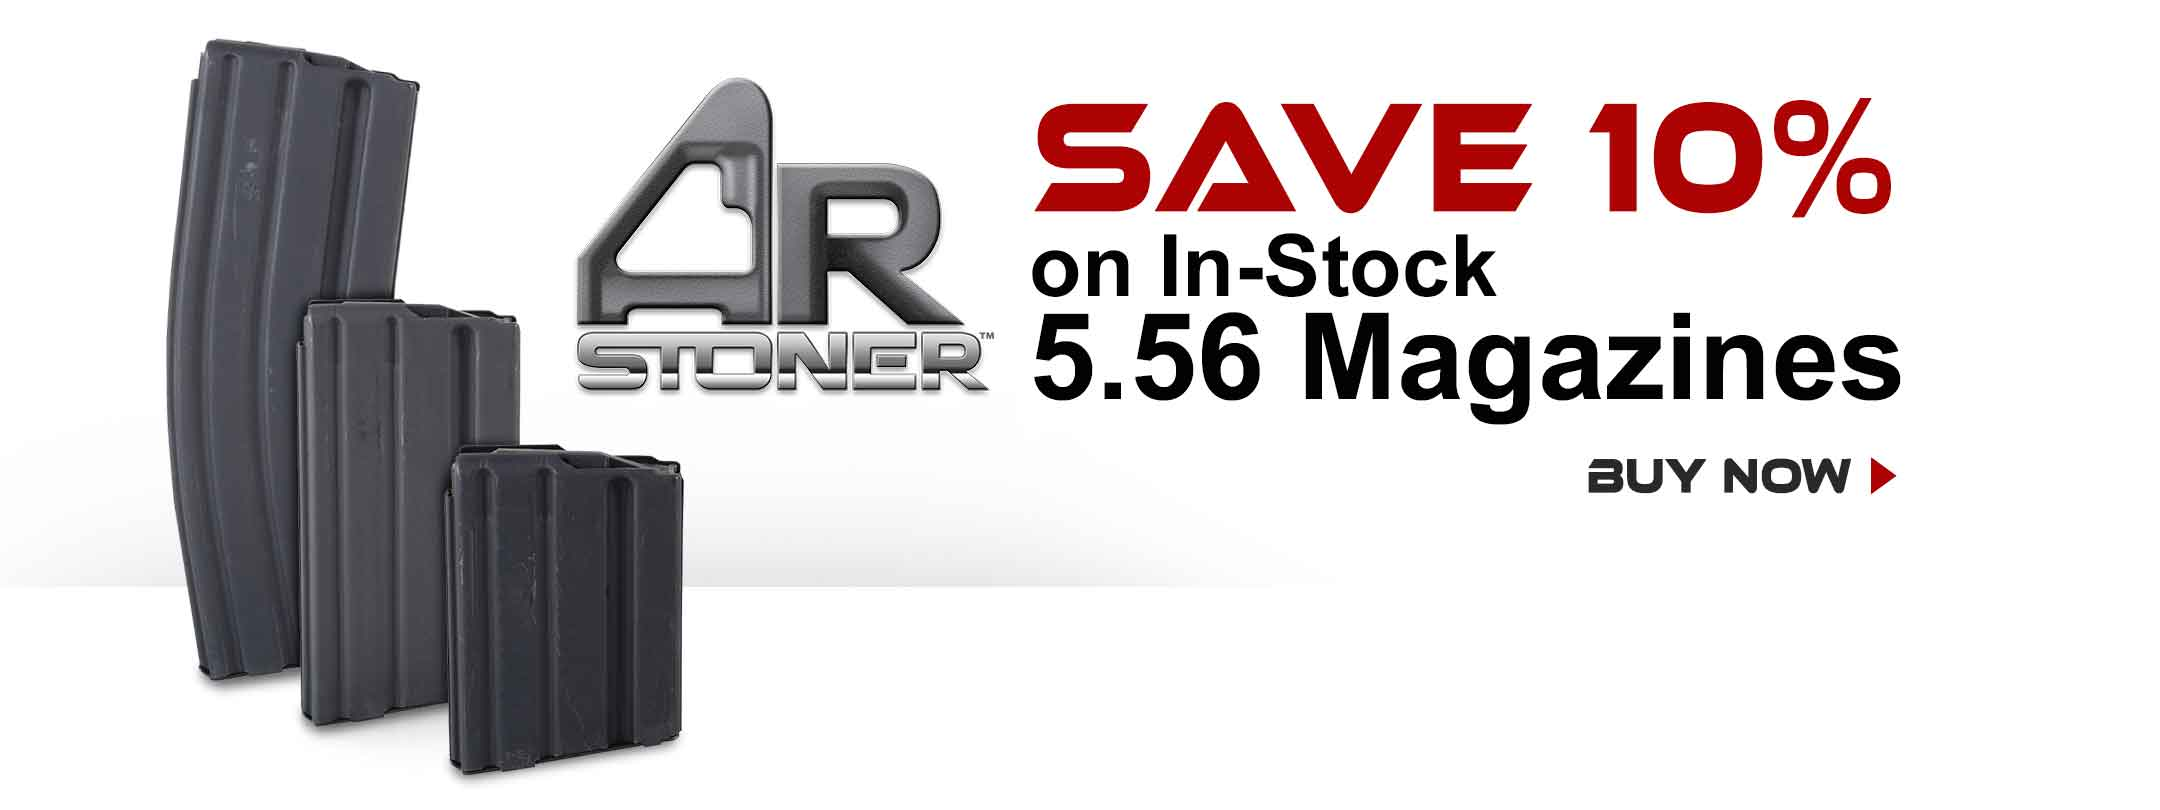 Save on In-Stock AR-Stoner 5.56 Magazines